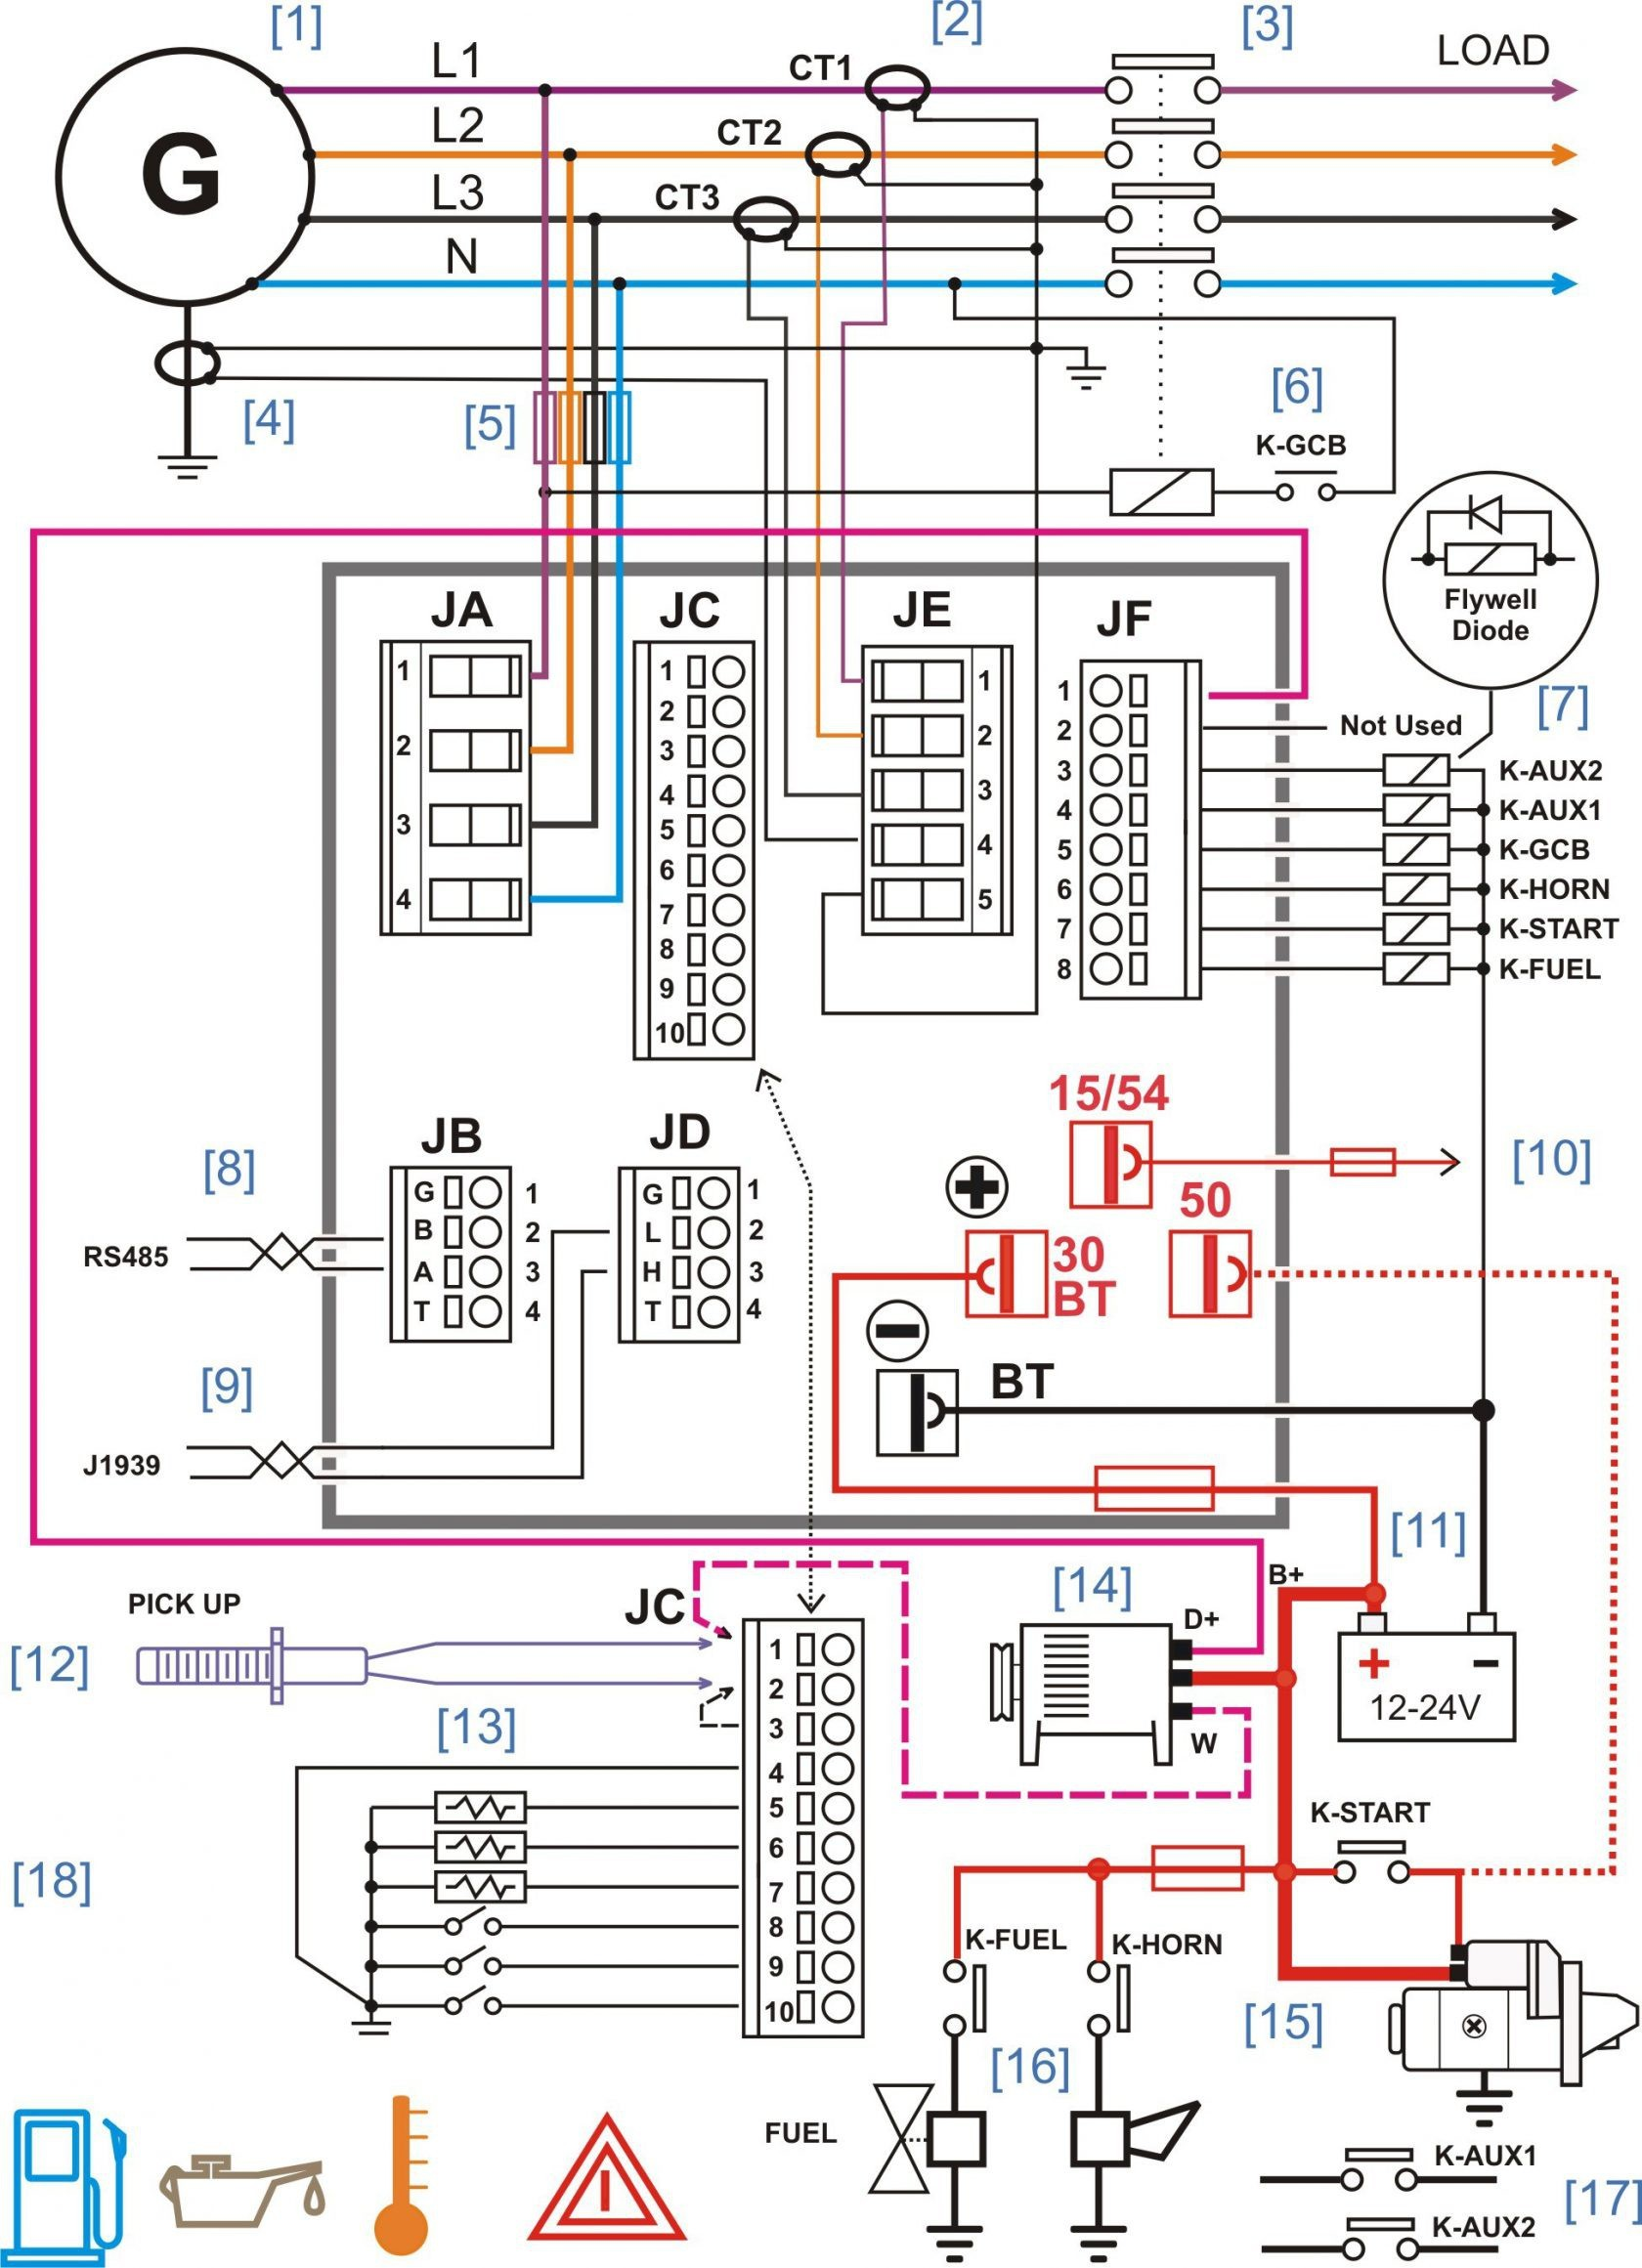 Subwoofer Wiring In House Schematics Diagrams Diagram For Powered Electrical Stereo Speaker Motorhome Symbols U2022 Rh Maxturner Co Single 4 Ohm Home